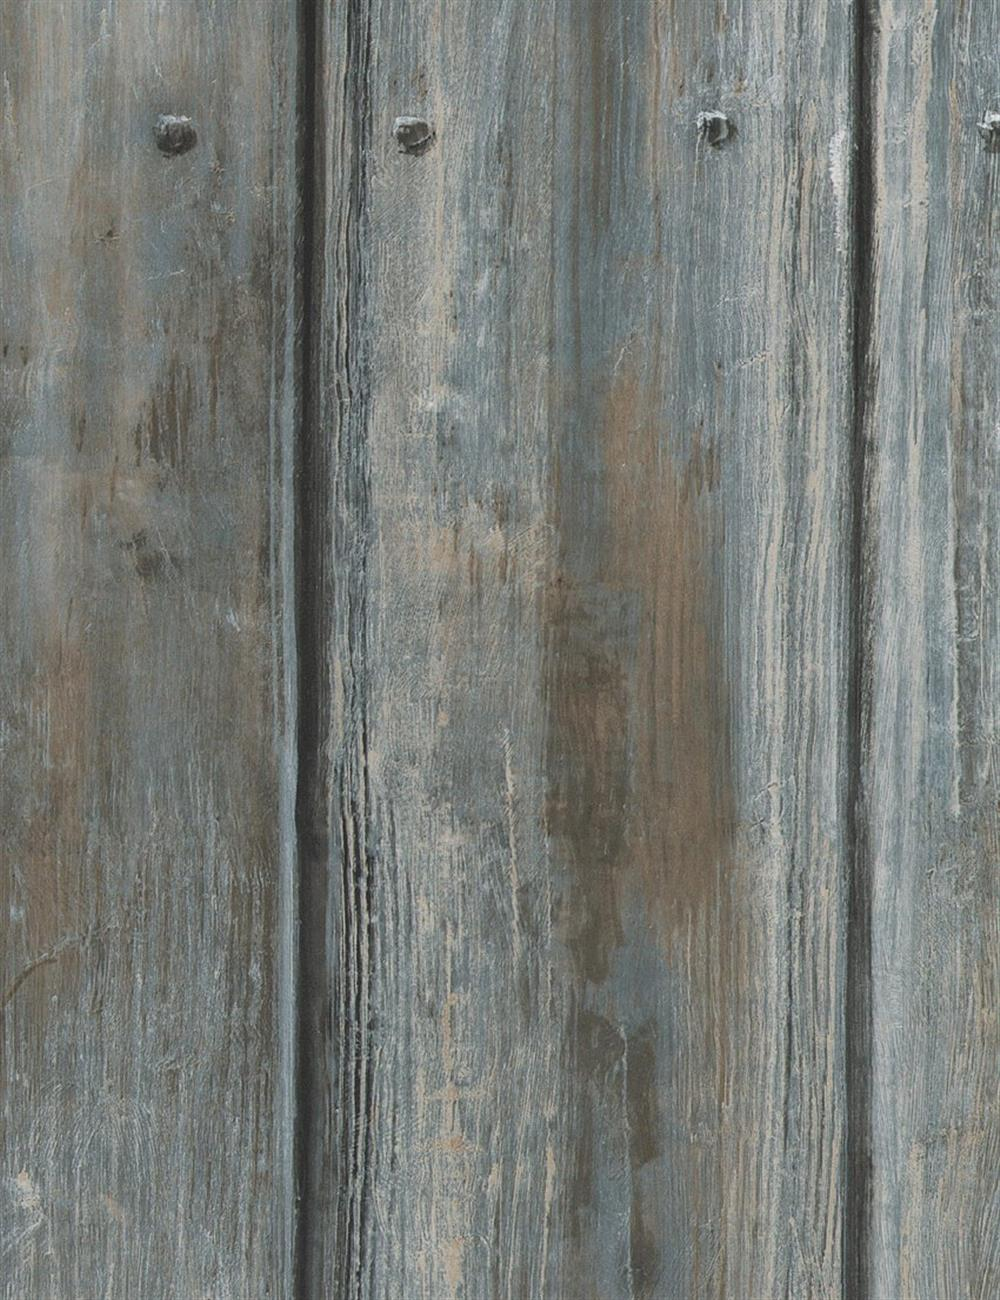 Rustic Lodge Timber Panel Wallpaper Driftwood Kathy HD Wallpapers Download Free Images Wallpaper [1000image.com]